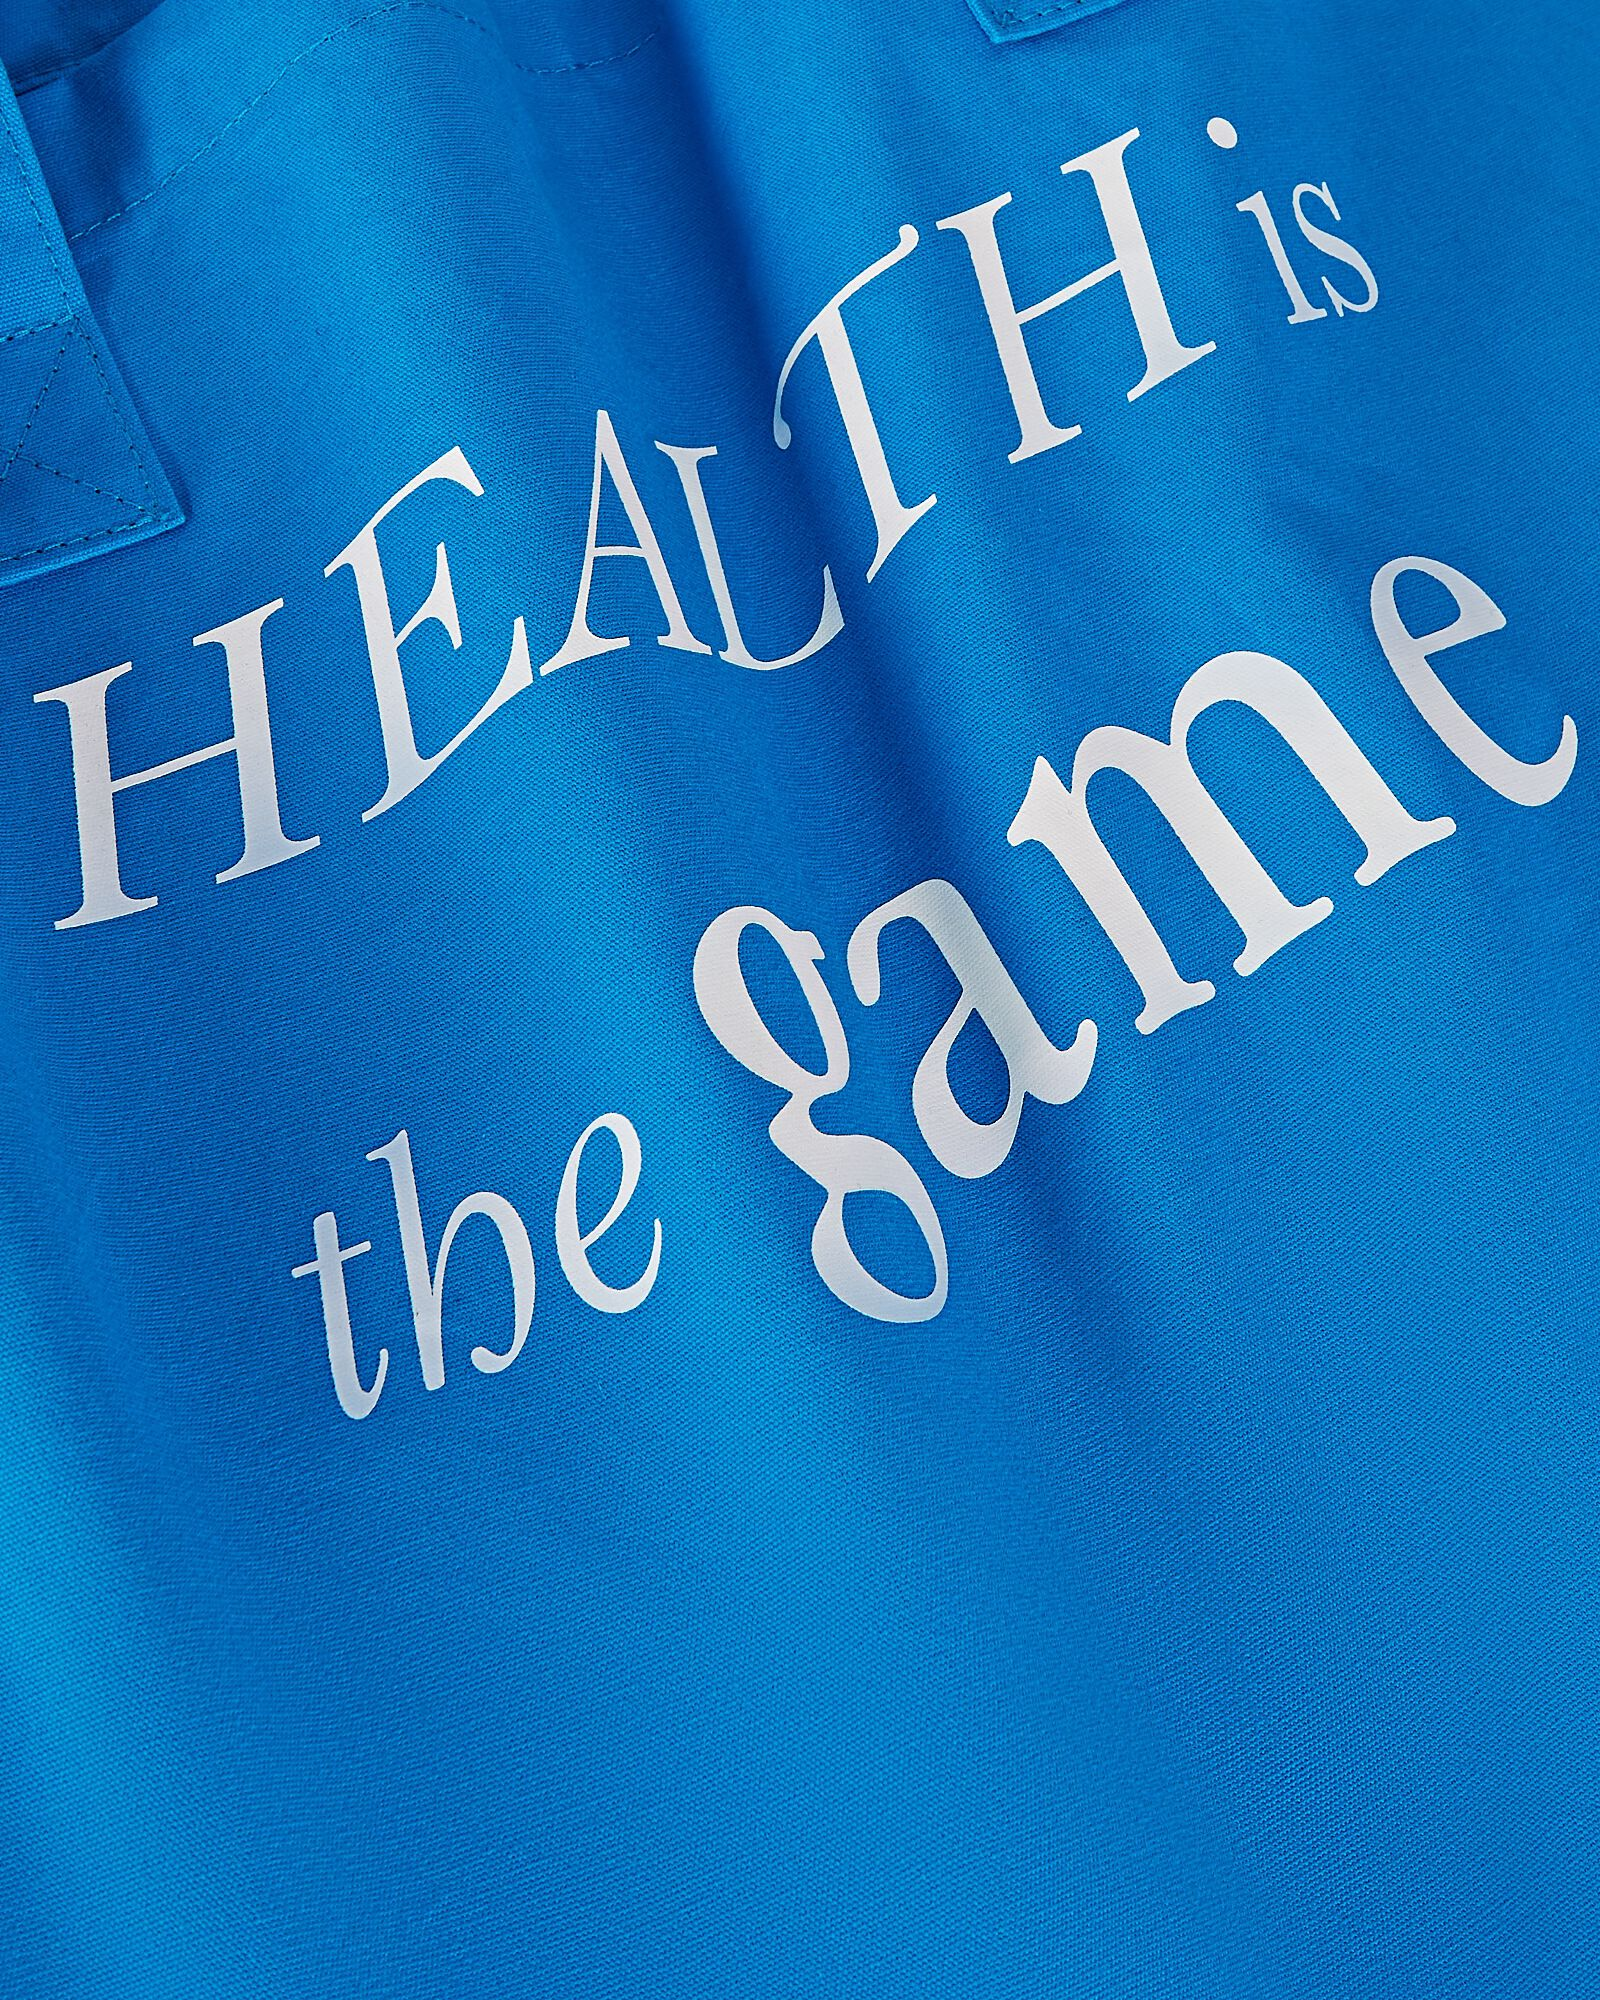 Health Is The Game Cotton Tote Bag, BLUE, hi-res